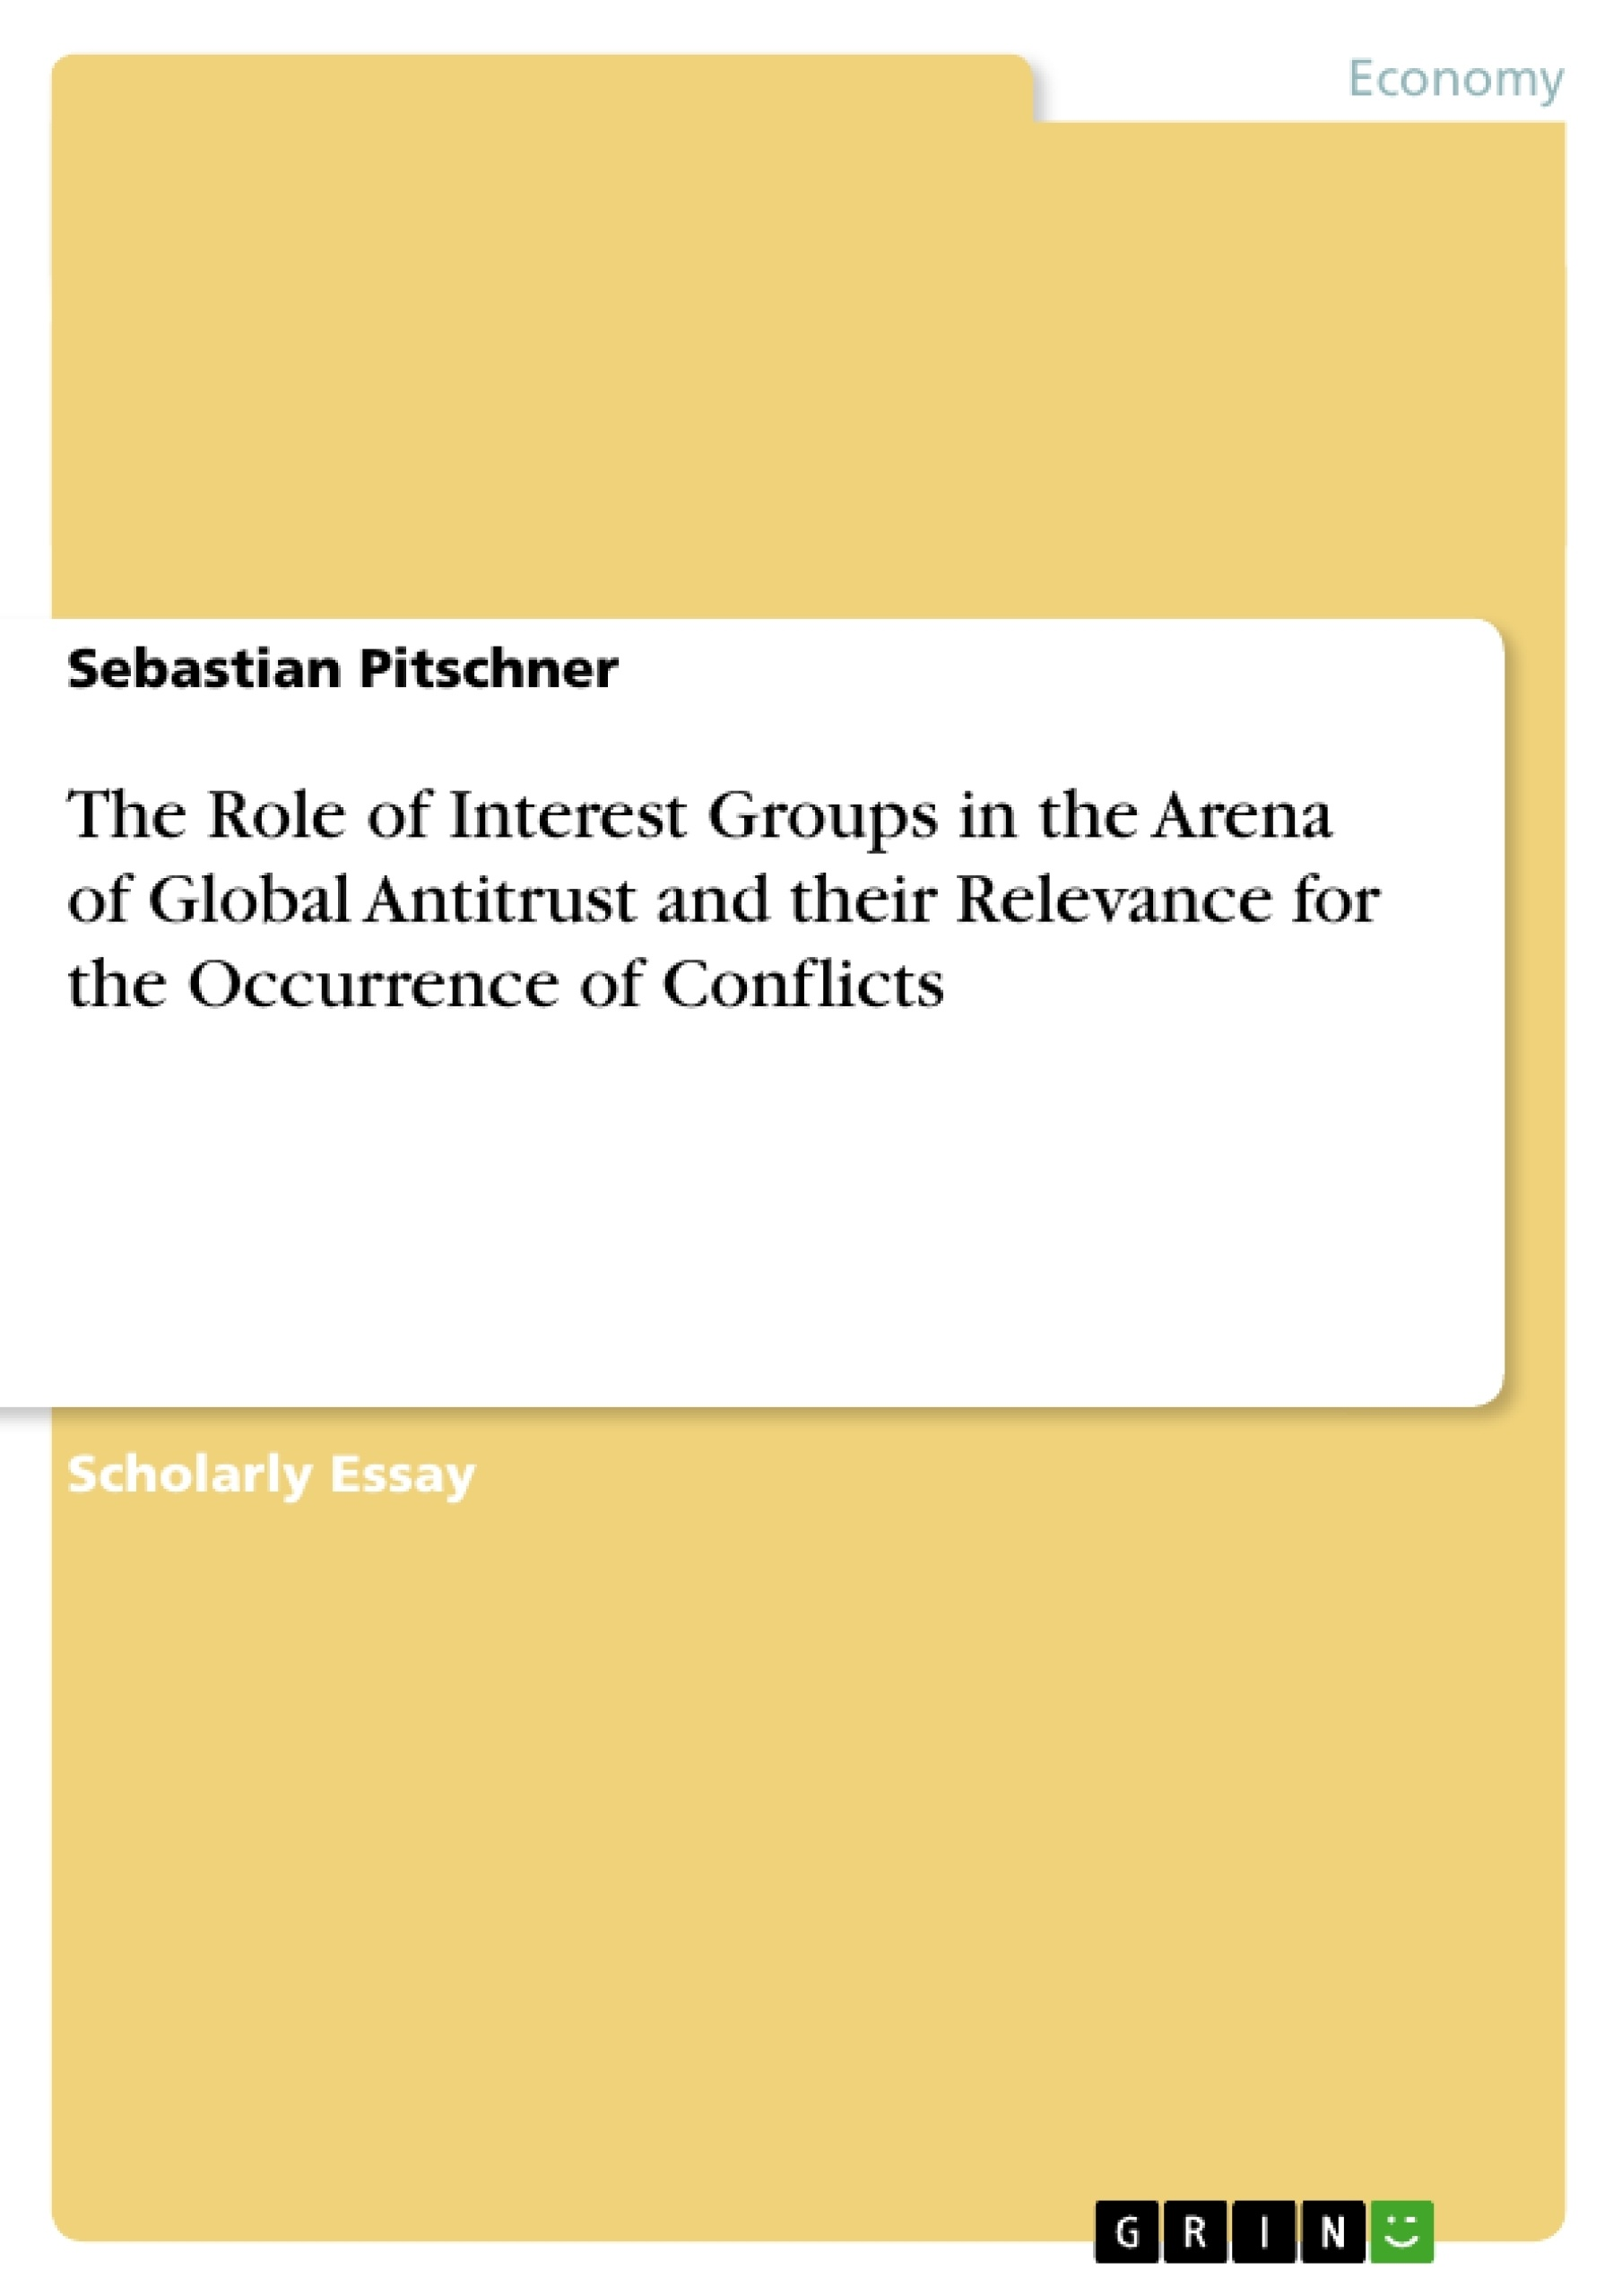 Title: The Role of Interest Groups in the Arena of Global Antitrust and their Relevance for the Occurrence of Conflicts